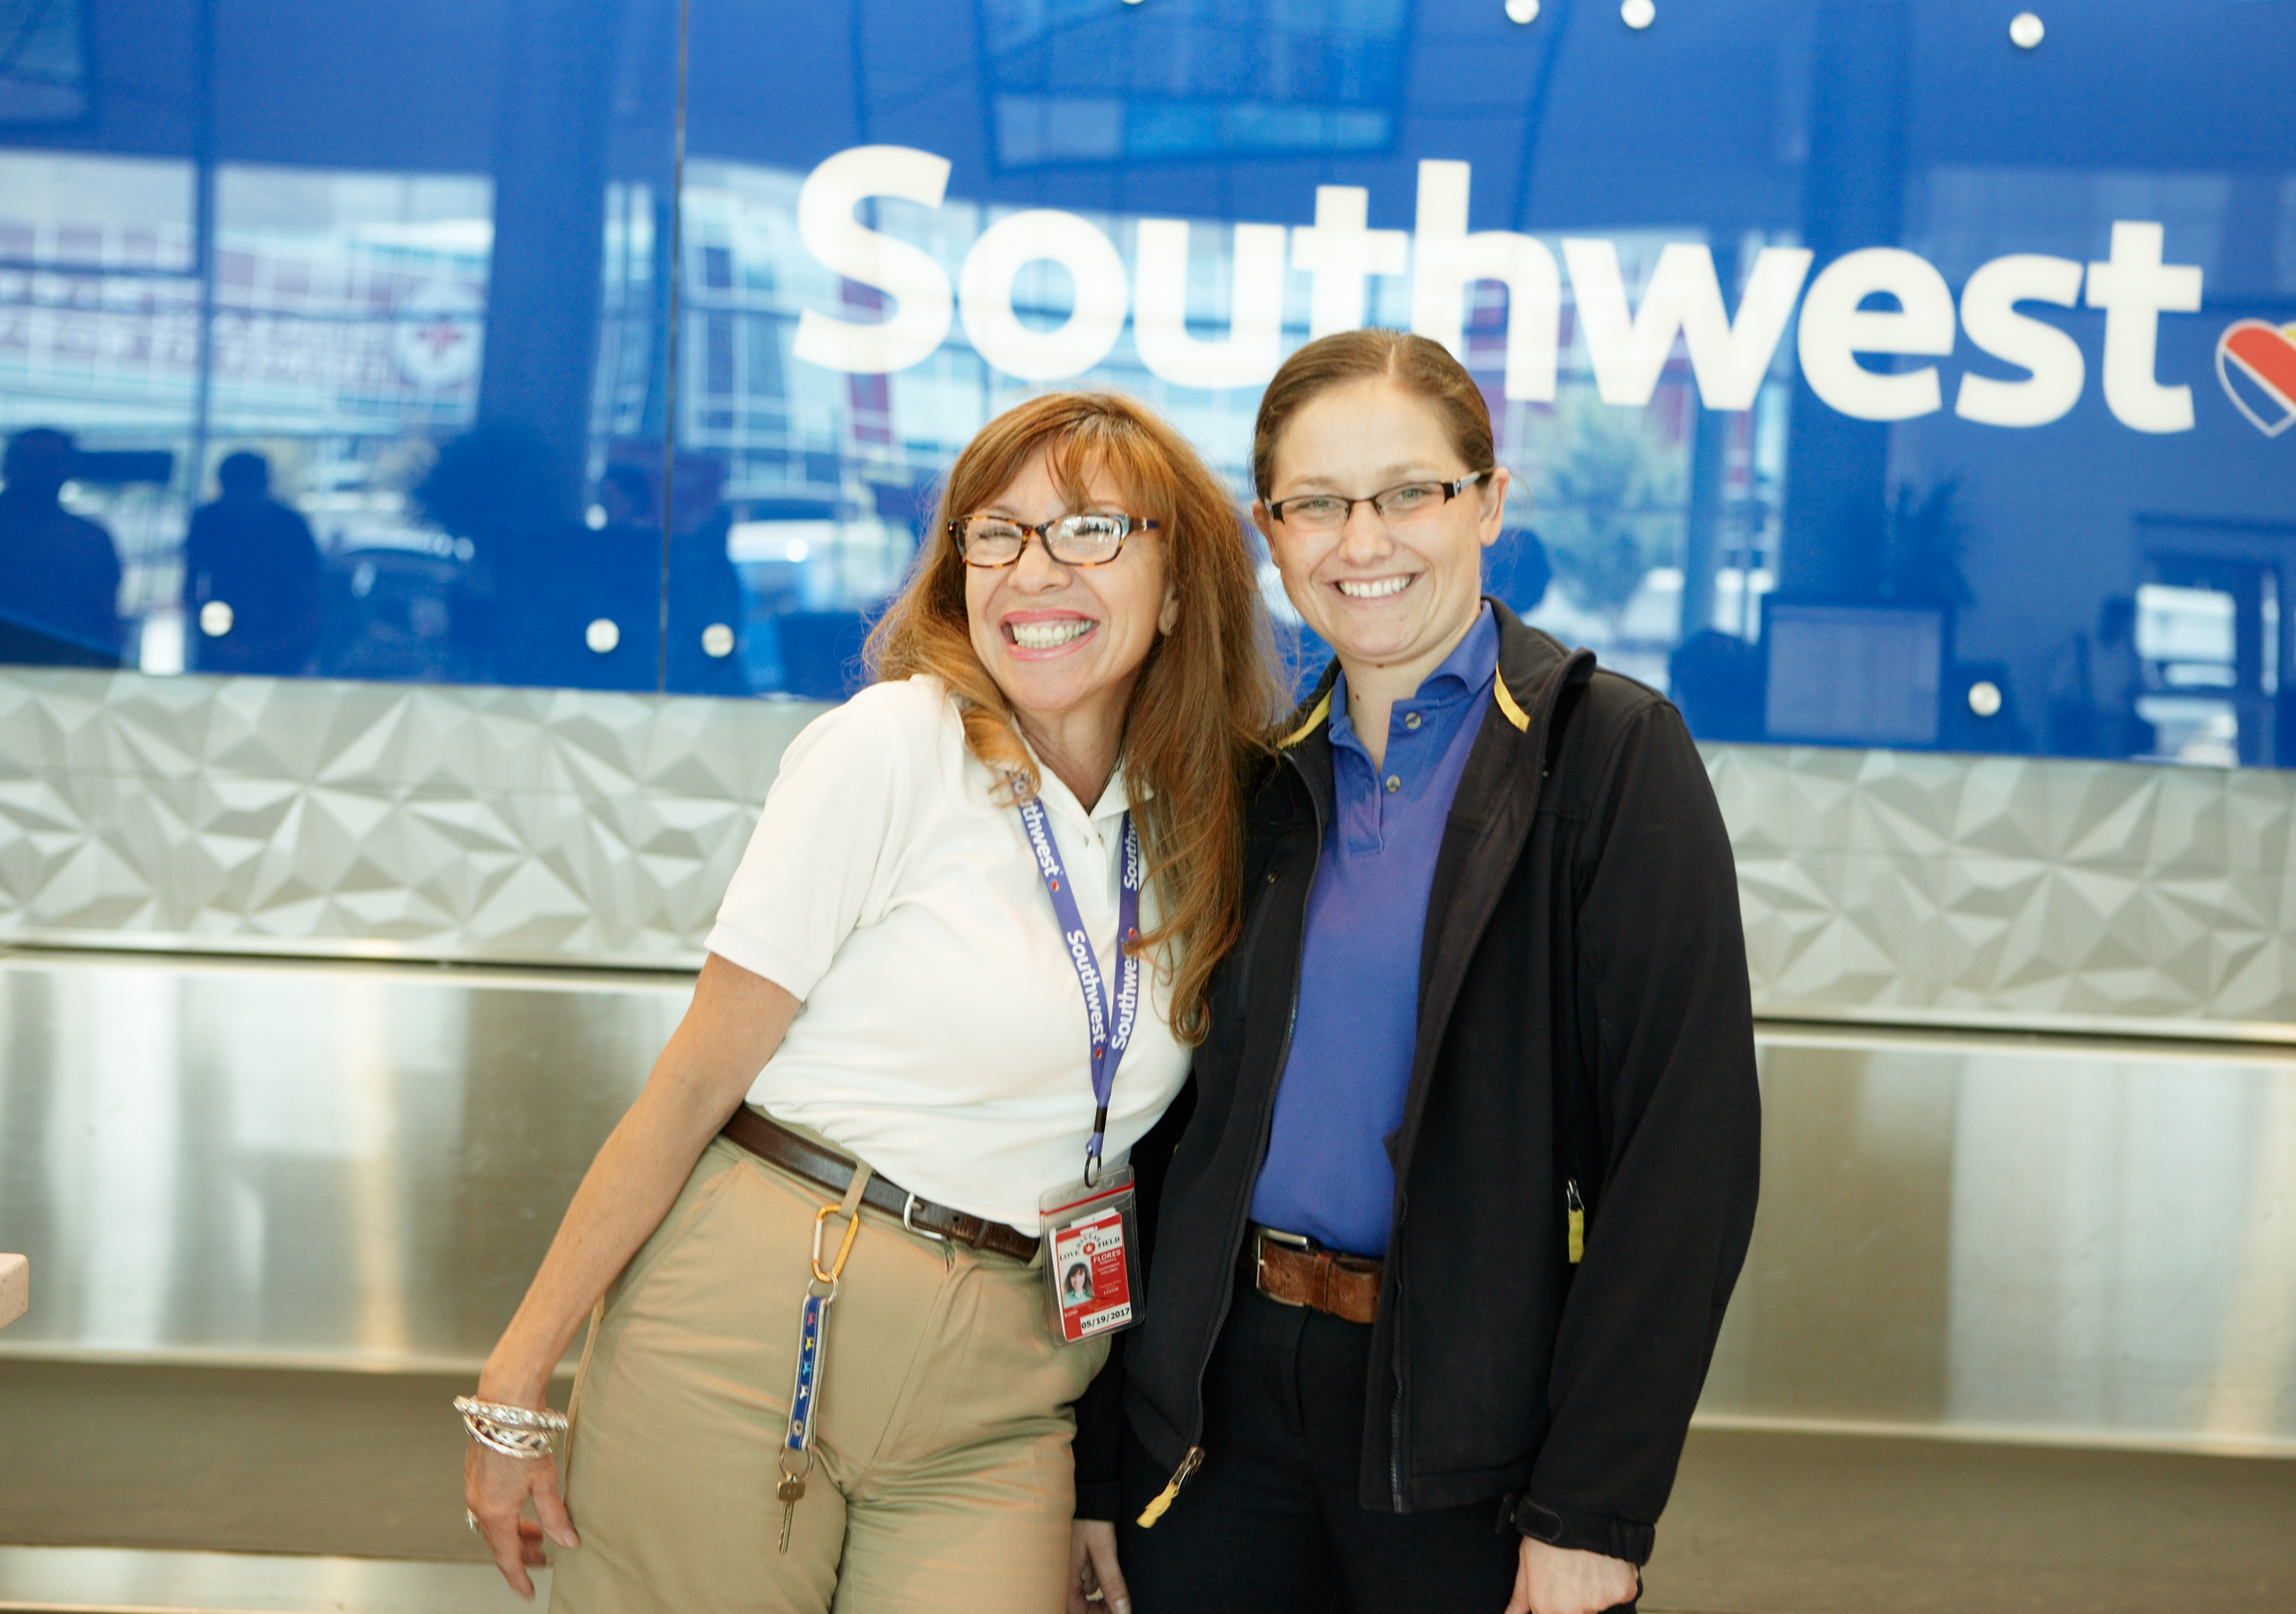 fcb834a8c2209 How Southwest Airlines Is Disrupting Business Travel | Fortune